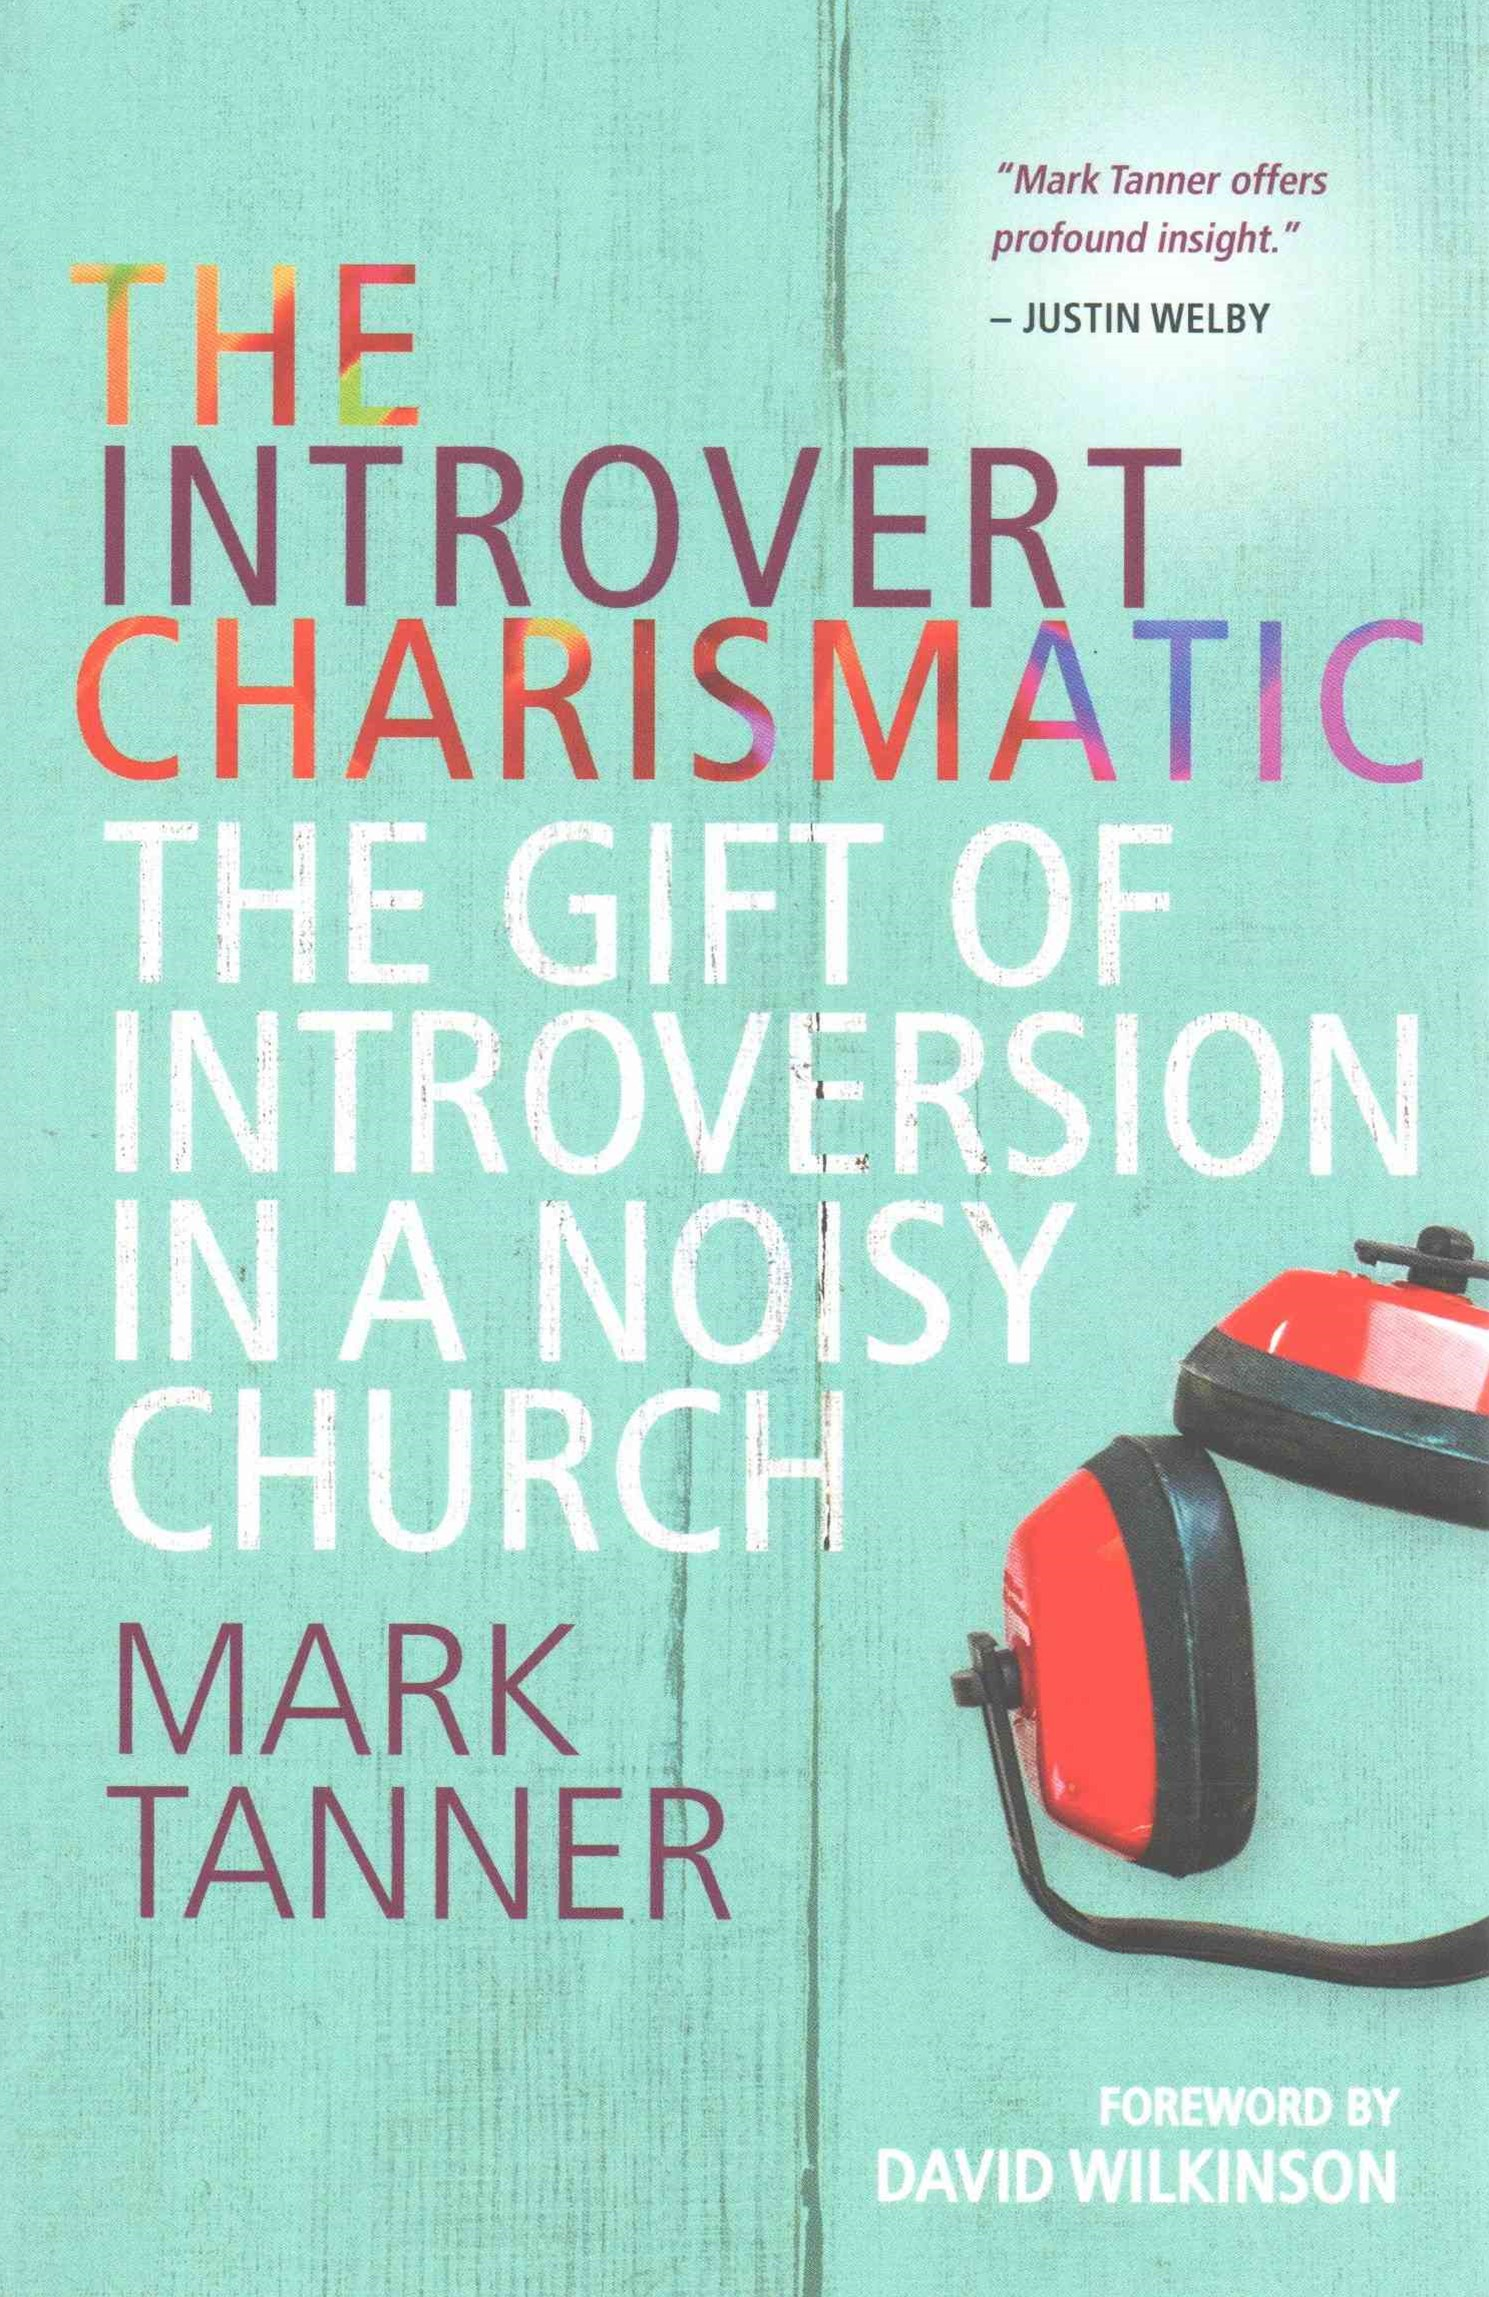 The Introvert Charismatic